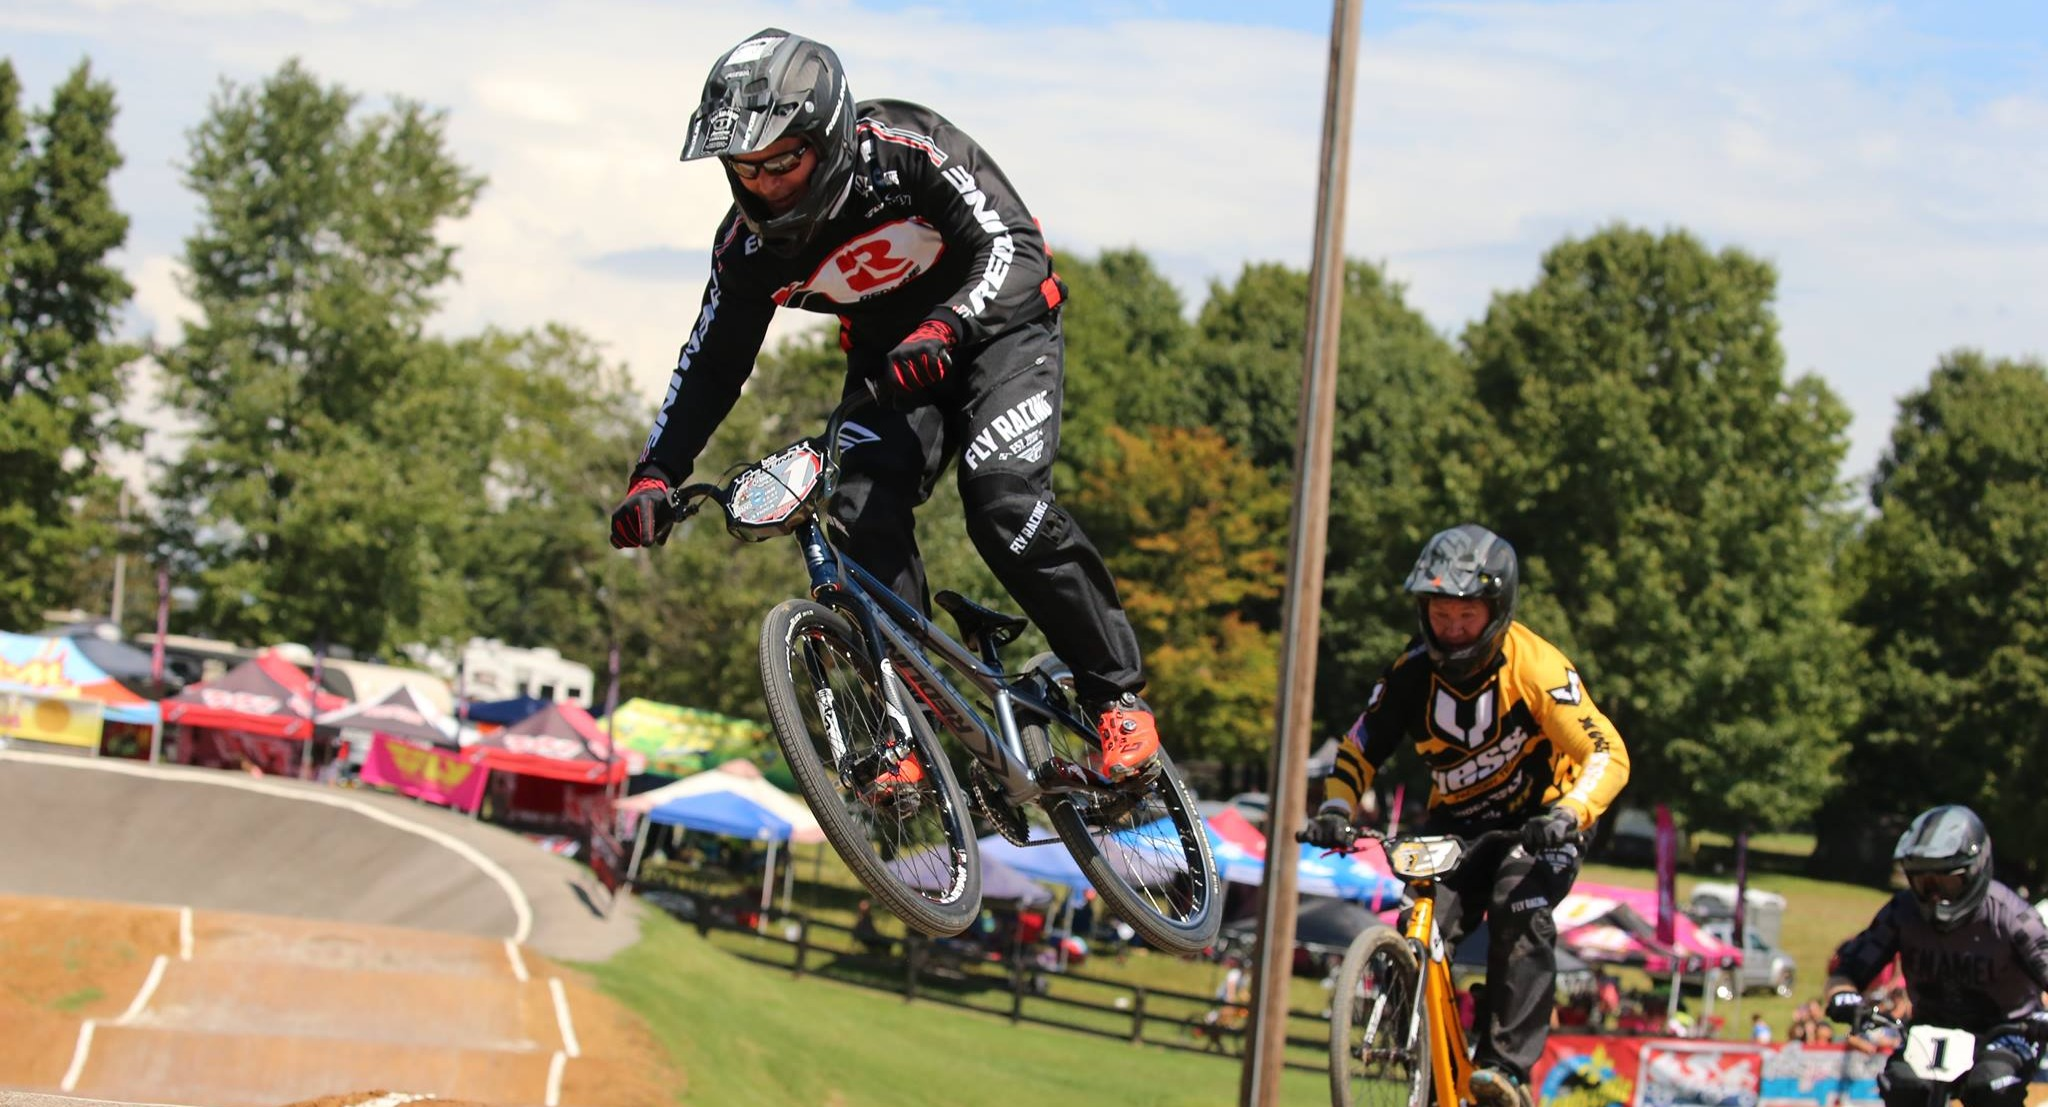 Redline veteran rider Eric Rupe leading the charge